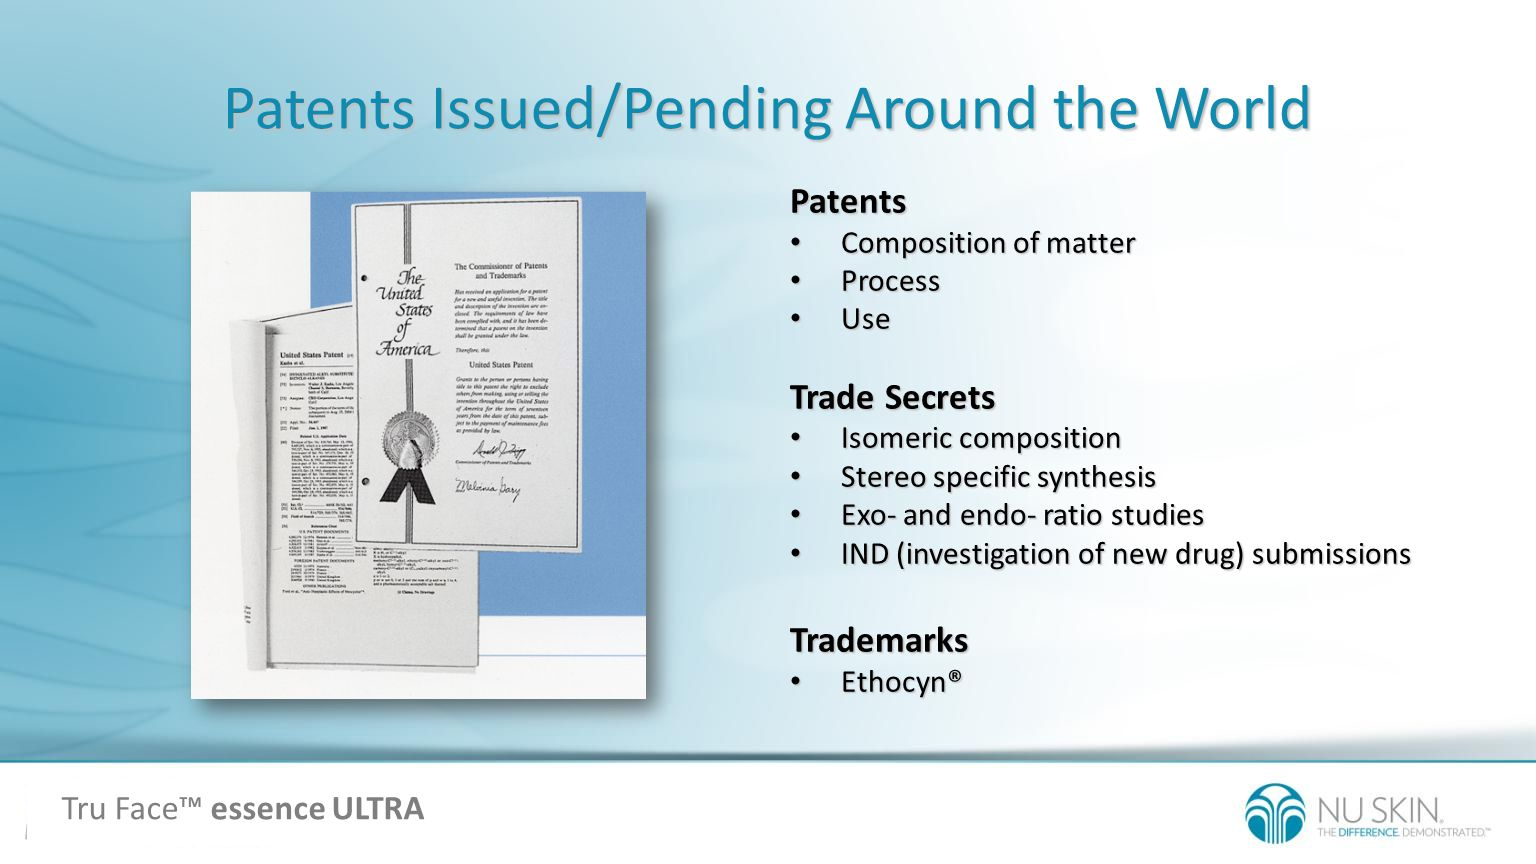 Patents Issued/Pending Around the World